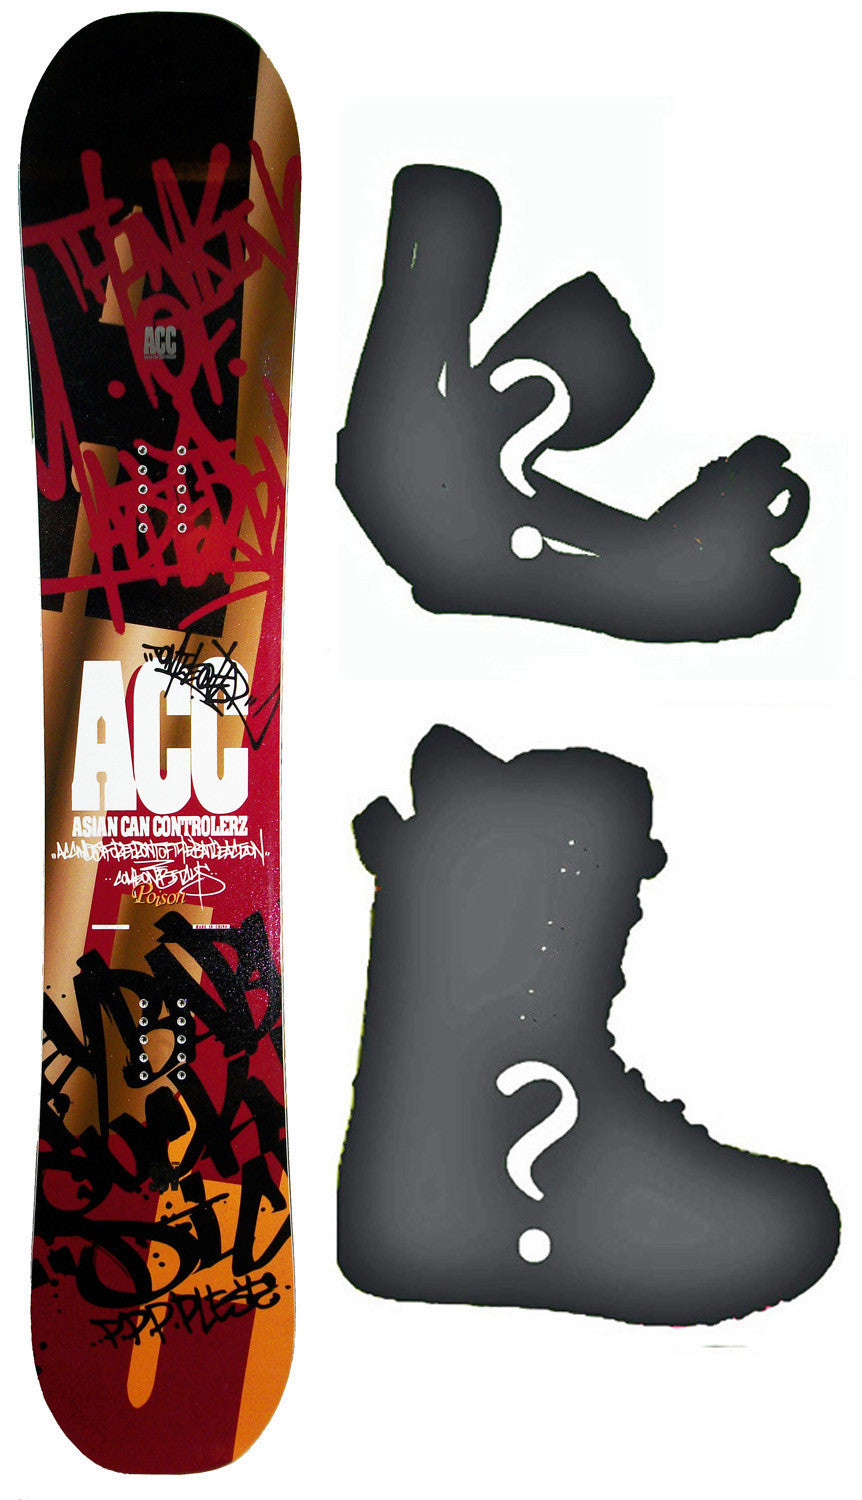 146cm Asian Can Controlerz Poison W-Rocker Snowboard, Build a Package with Boots and Bindings